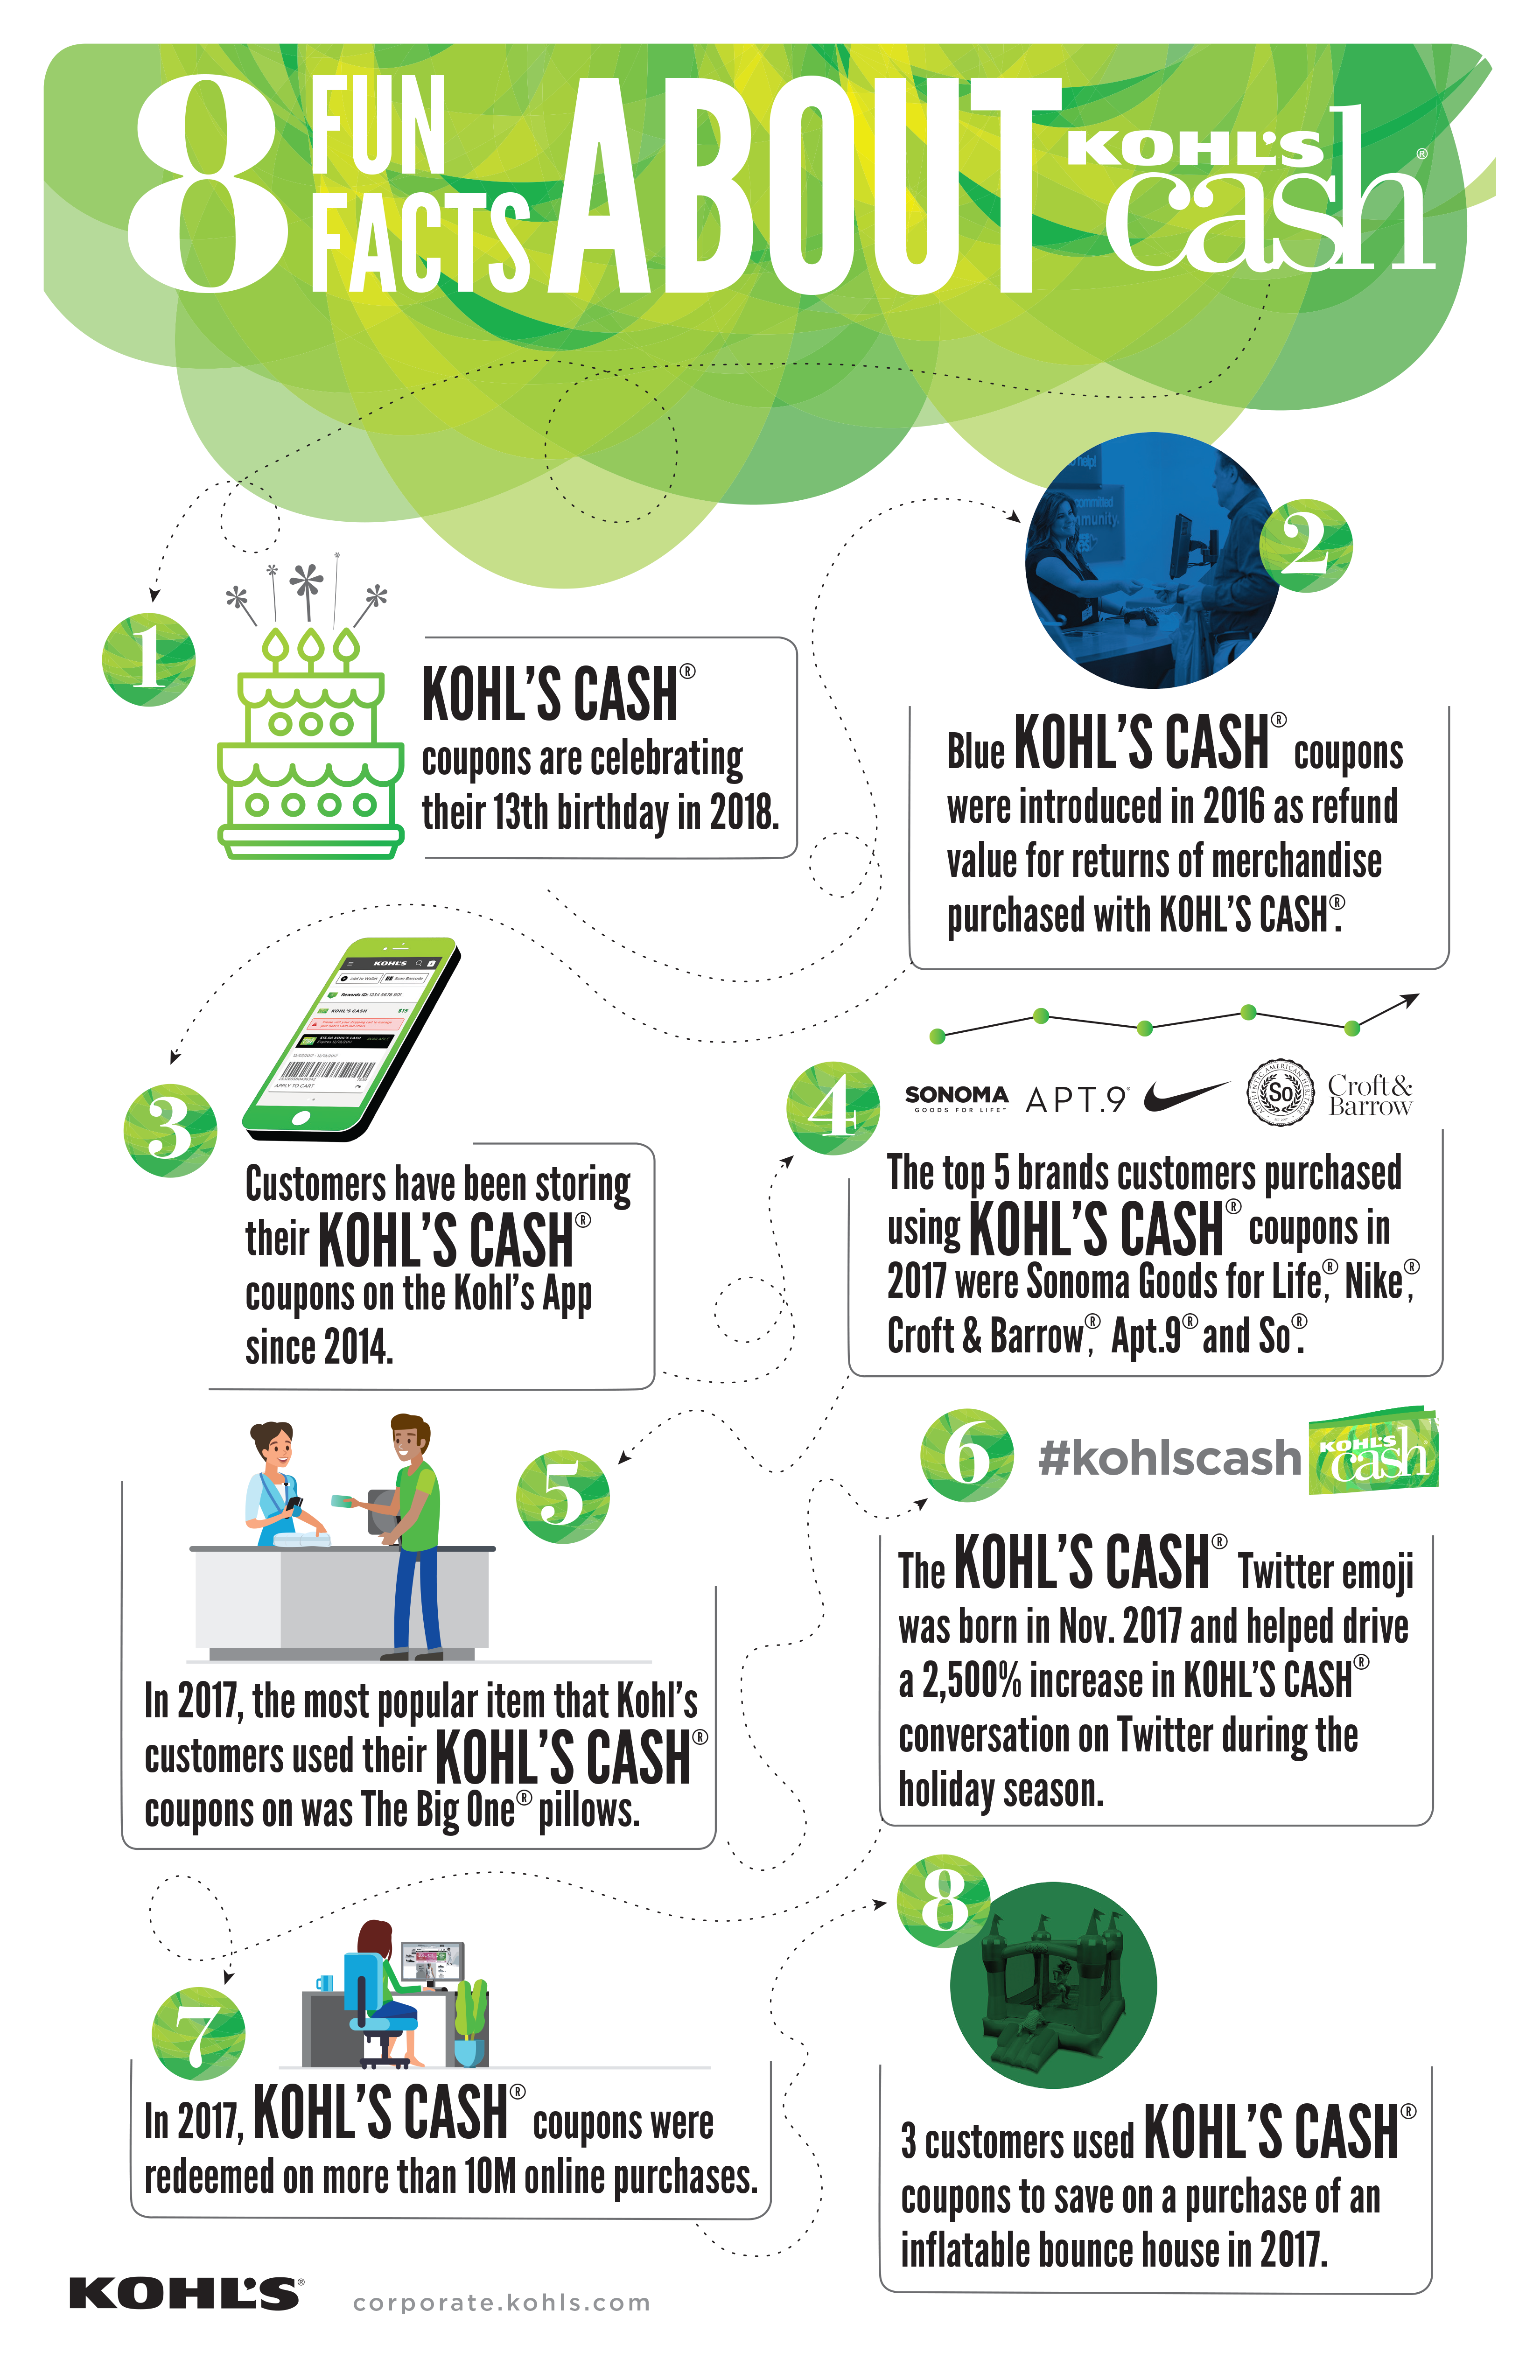 eight fun facts about kohl's cash®